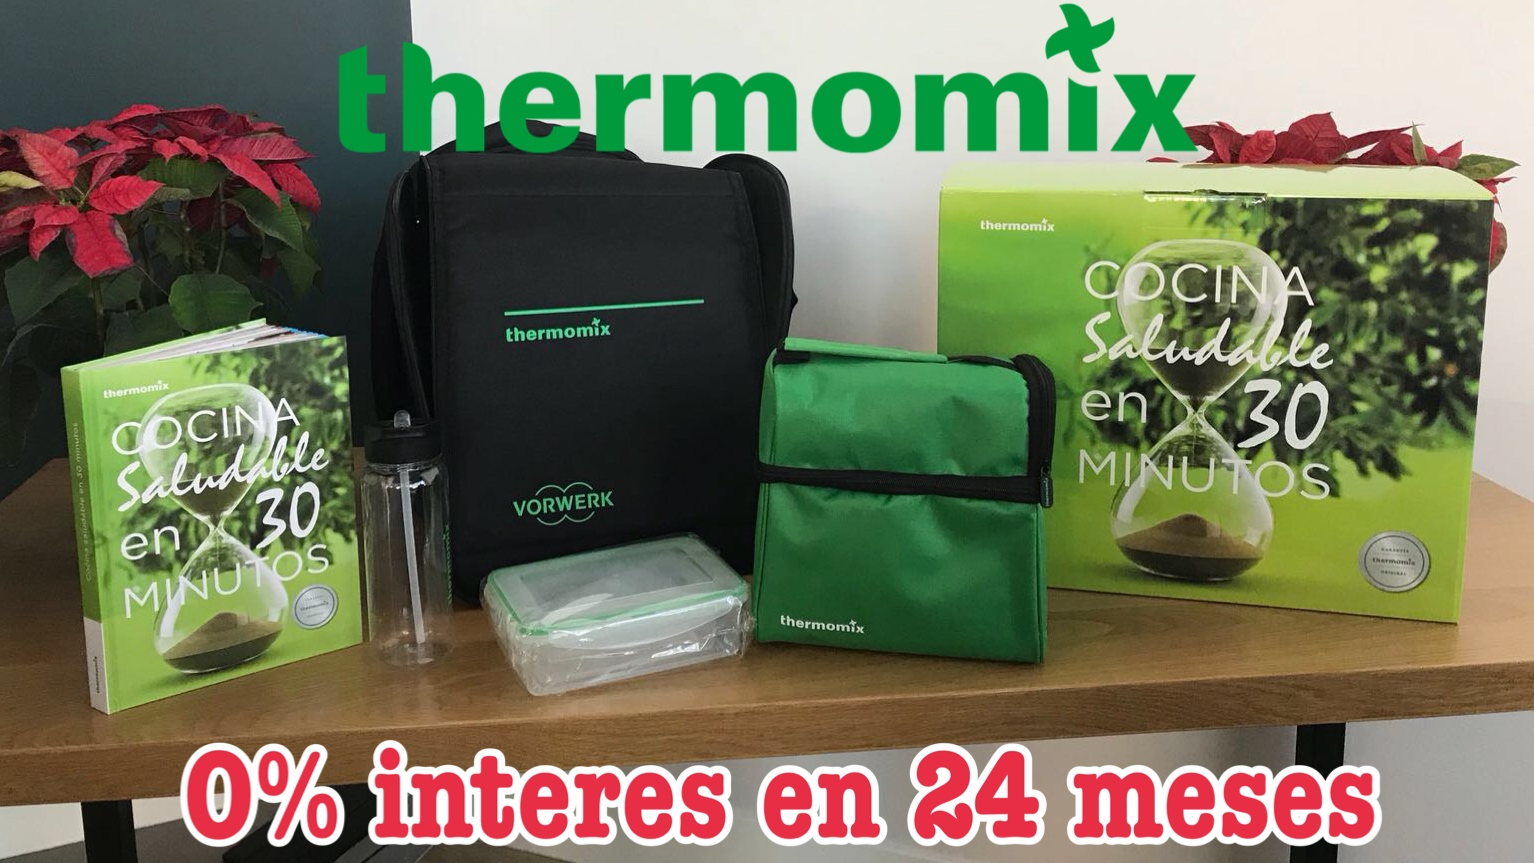 Thermomix cocina saludable en 30 minutos 0 inter s for Cocina saludable en 30 minutos thermomix